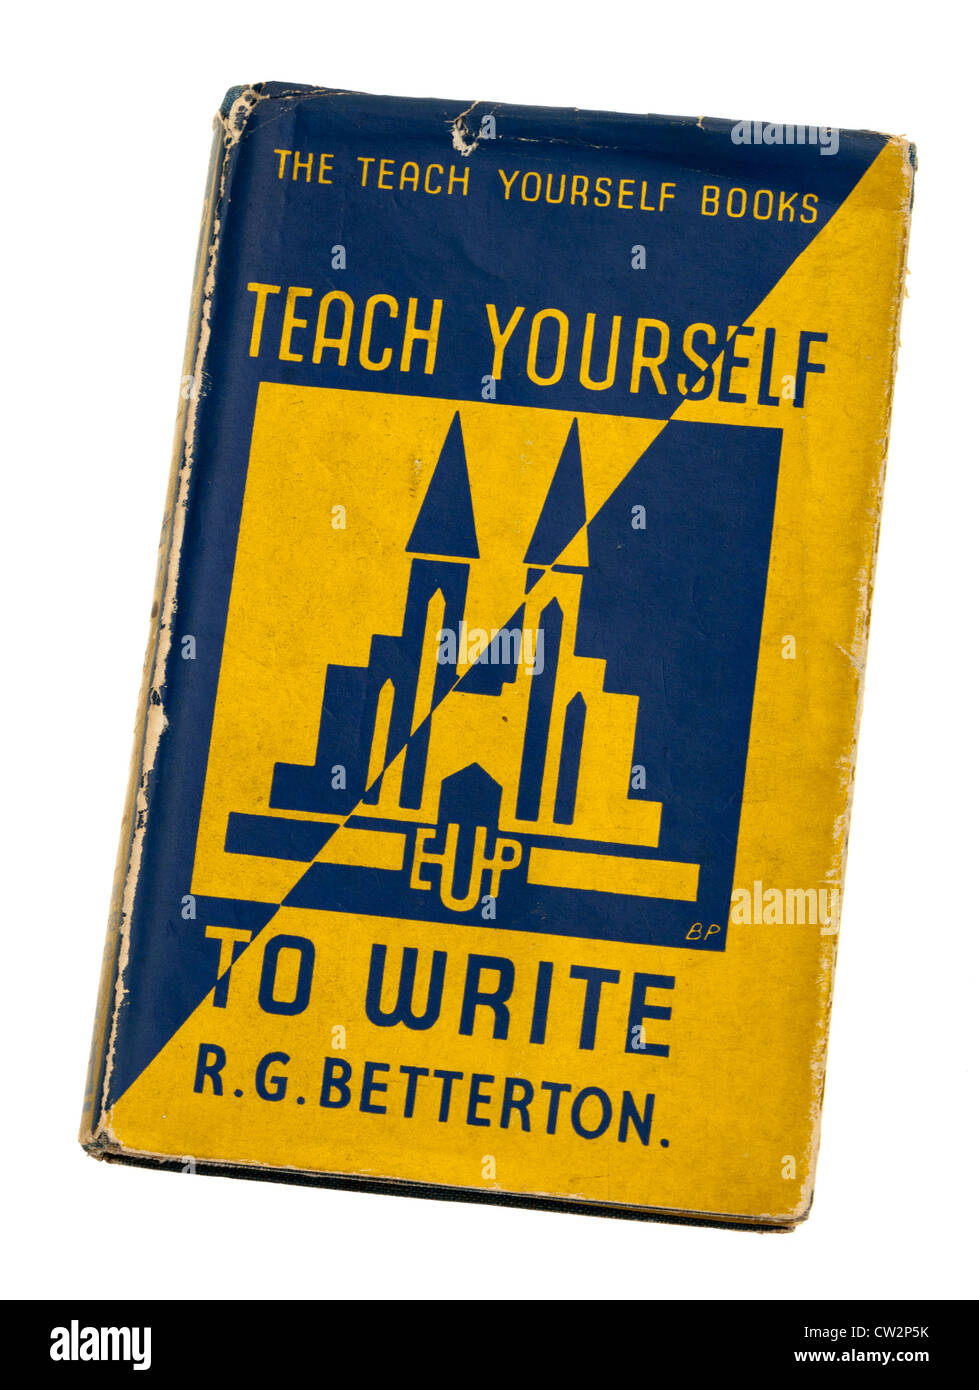 Teach Yourself book on writing - Stock Image